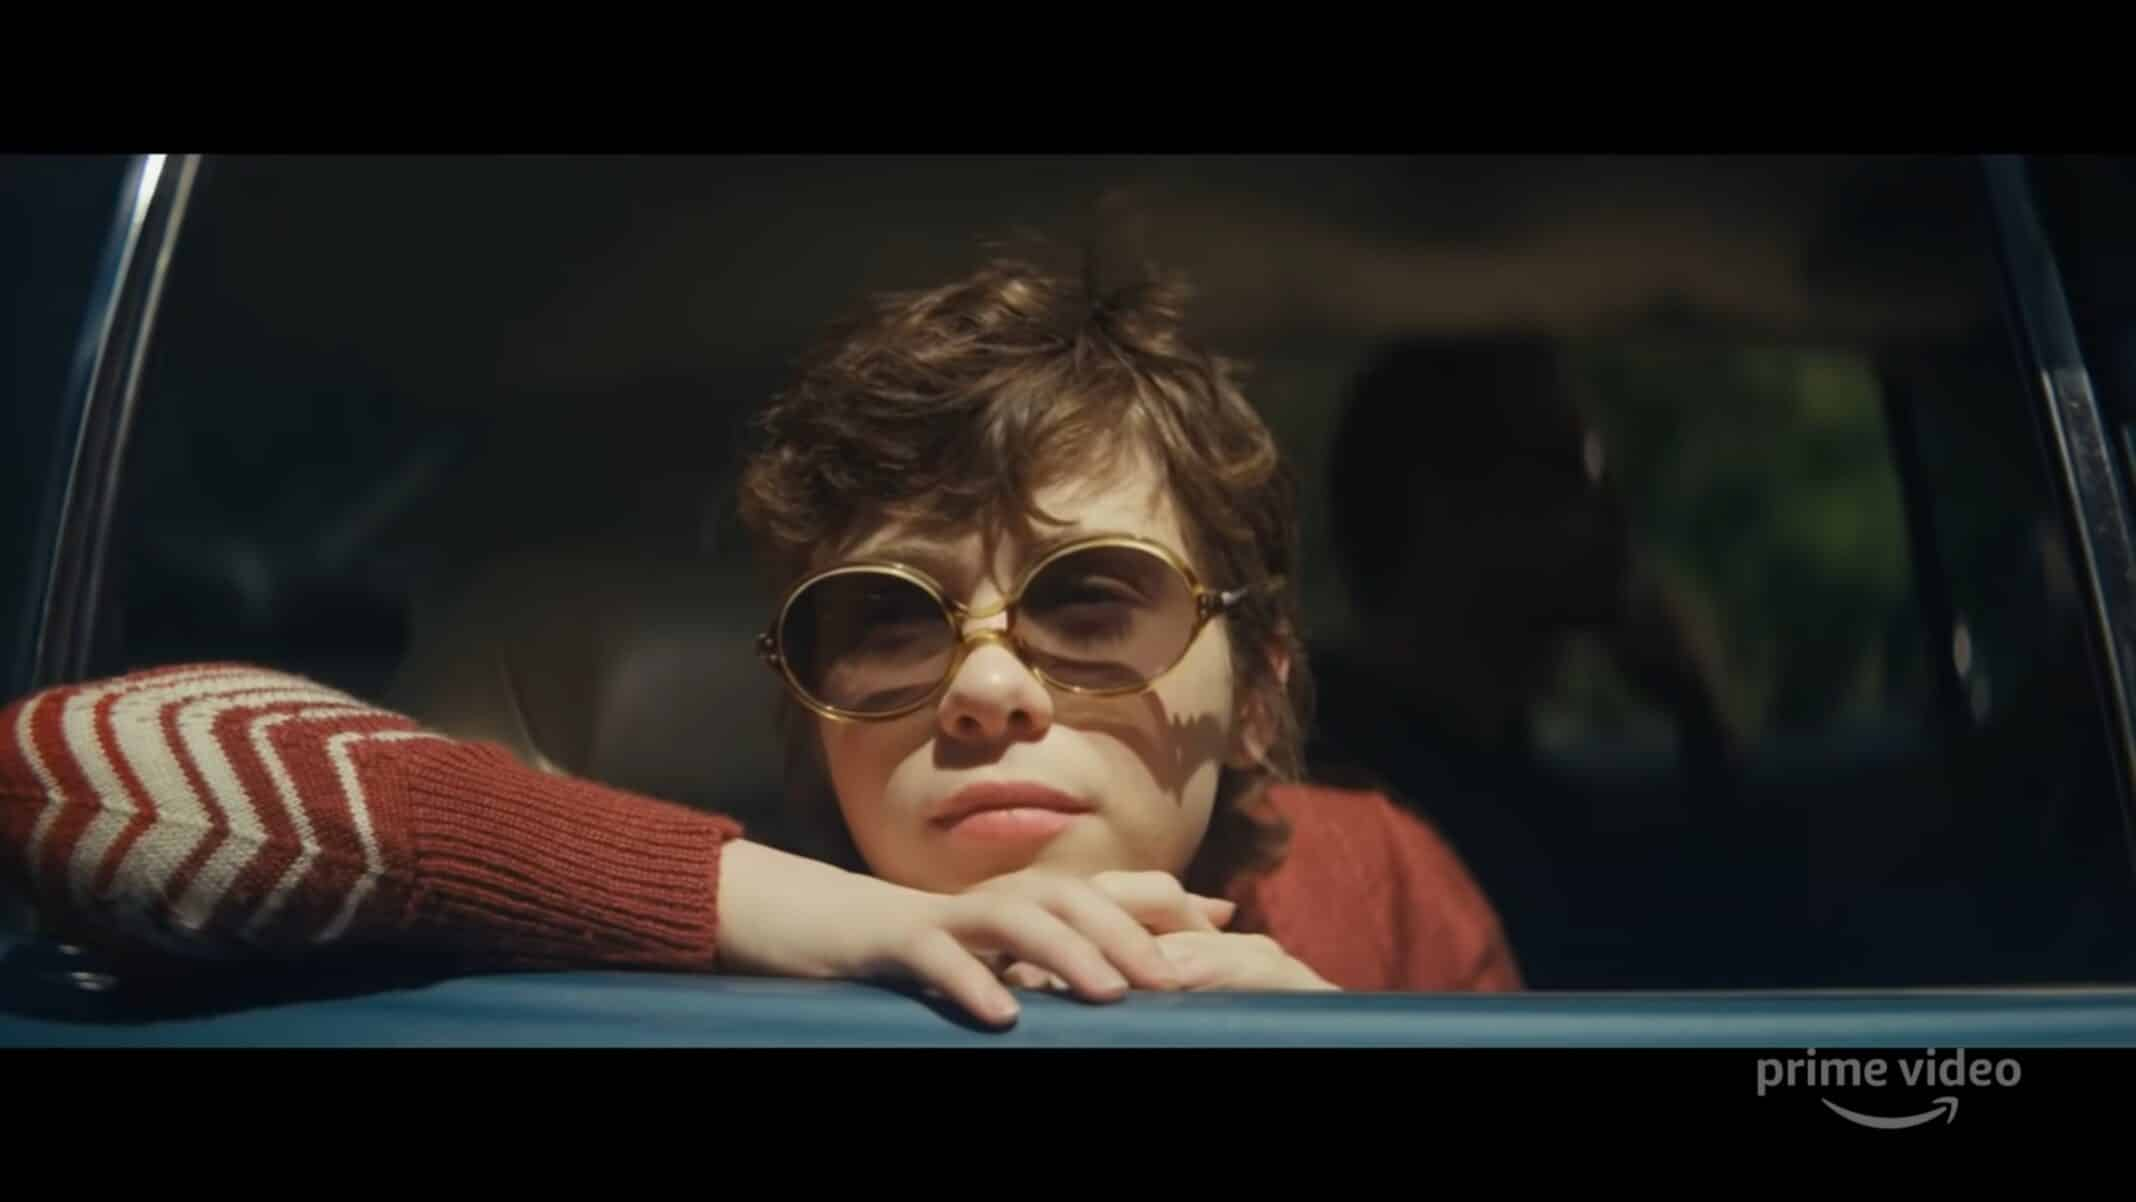 Betty (Sophia Lillis) in her uncle's car